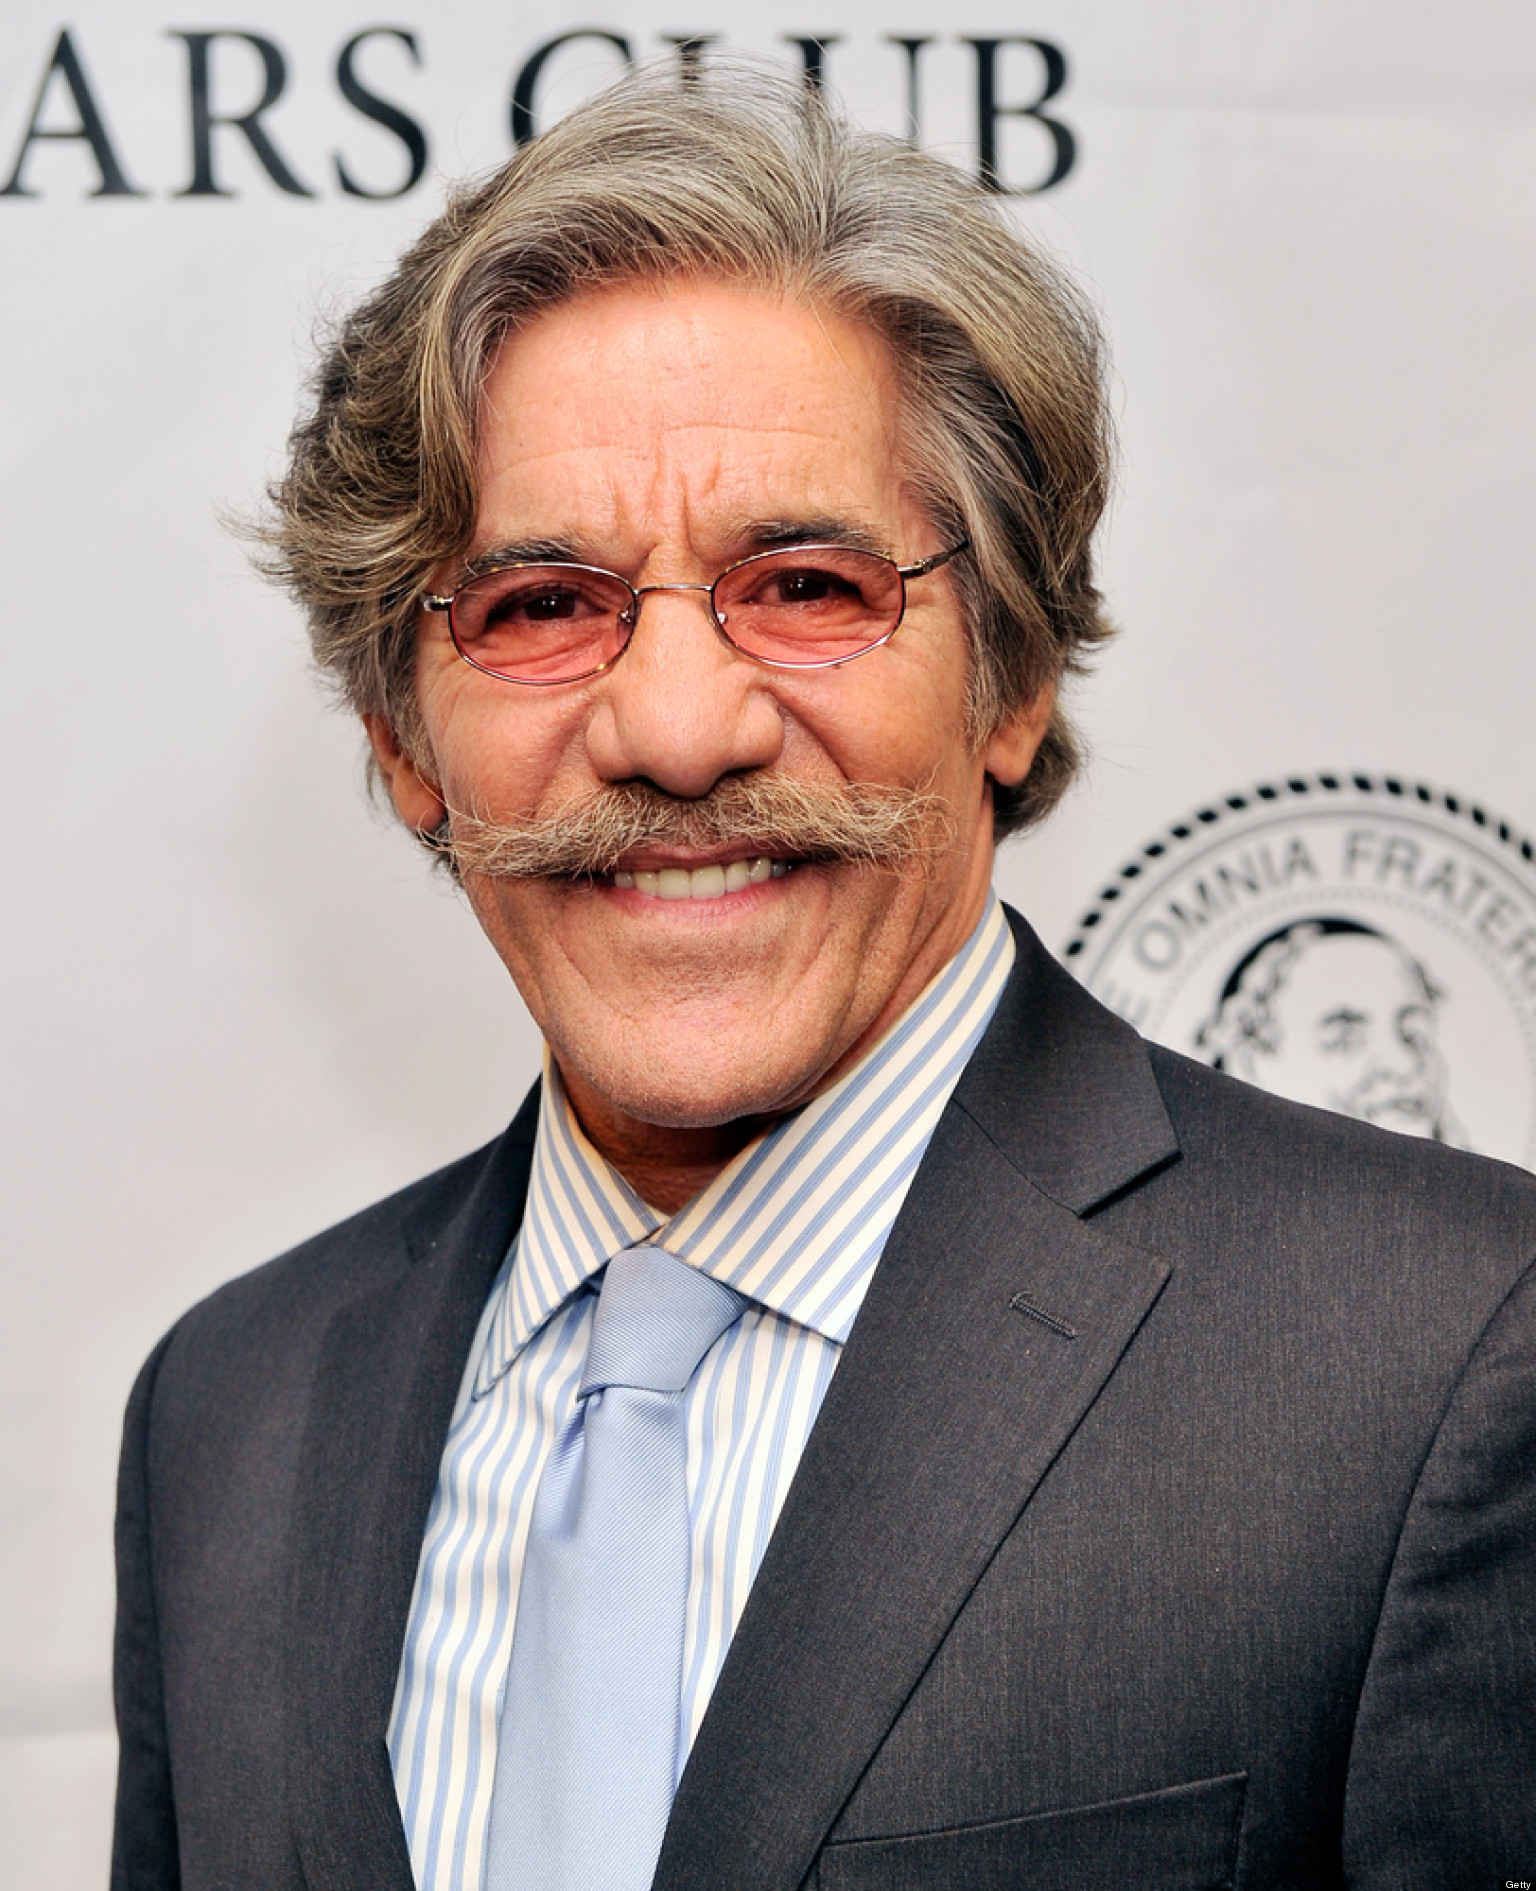 Geraldo Rivera On Michael Hastings: 'Hard To Forget' Reporter Ruined General Stanley McChrystal's Career - o-GERALDO-RIVERA-MICHAEL-HASTINGS-facebook